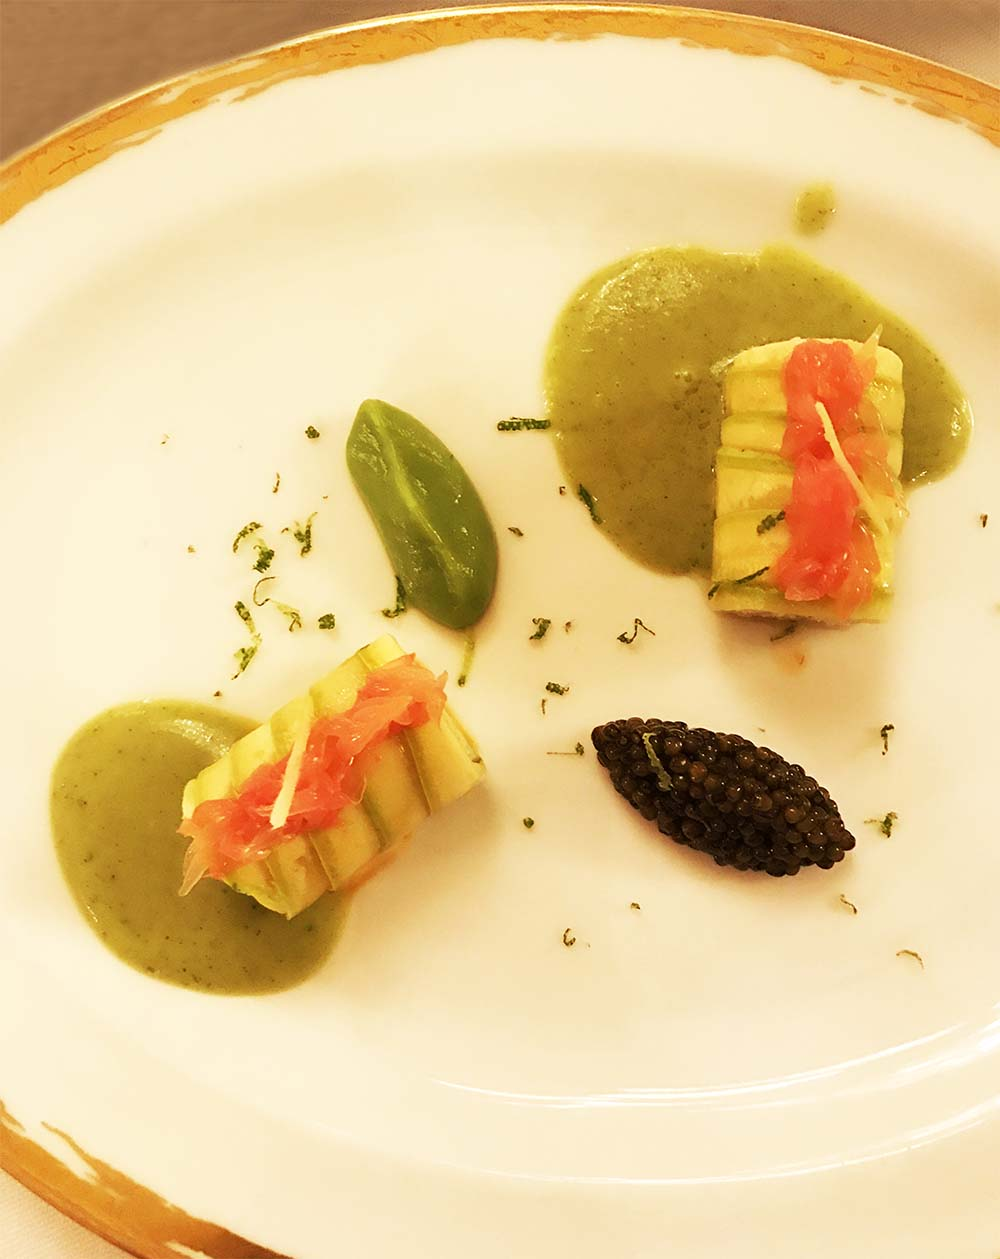 The seafood course at Le Meurice; crab and caviar,with a lovely sorrel sauce.